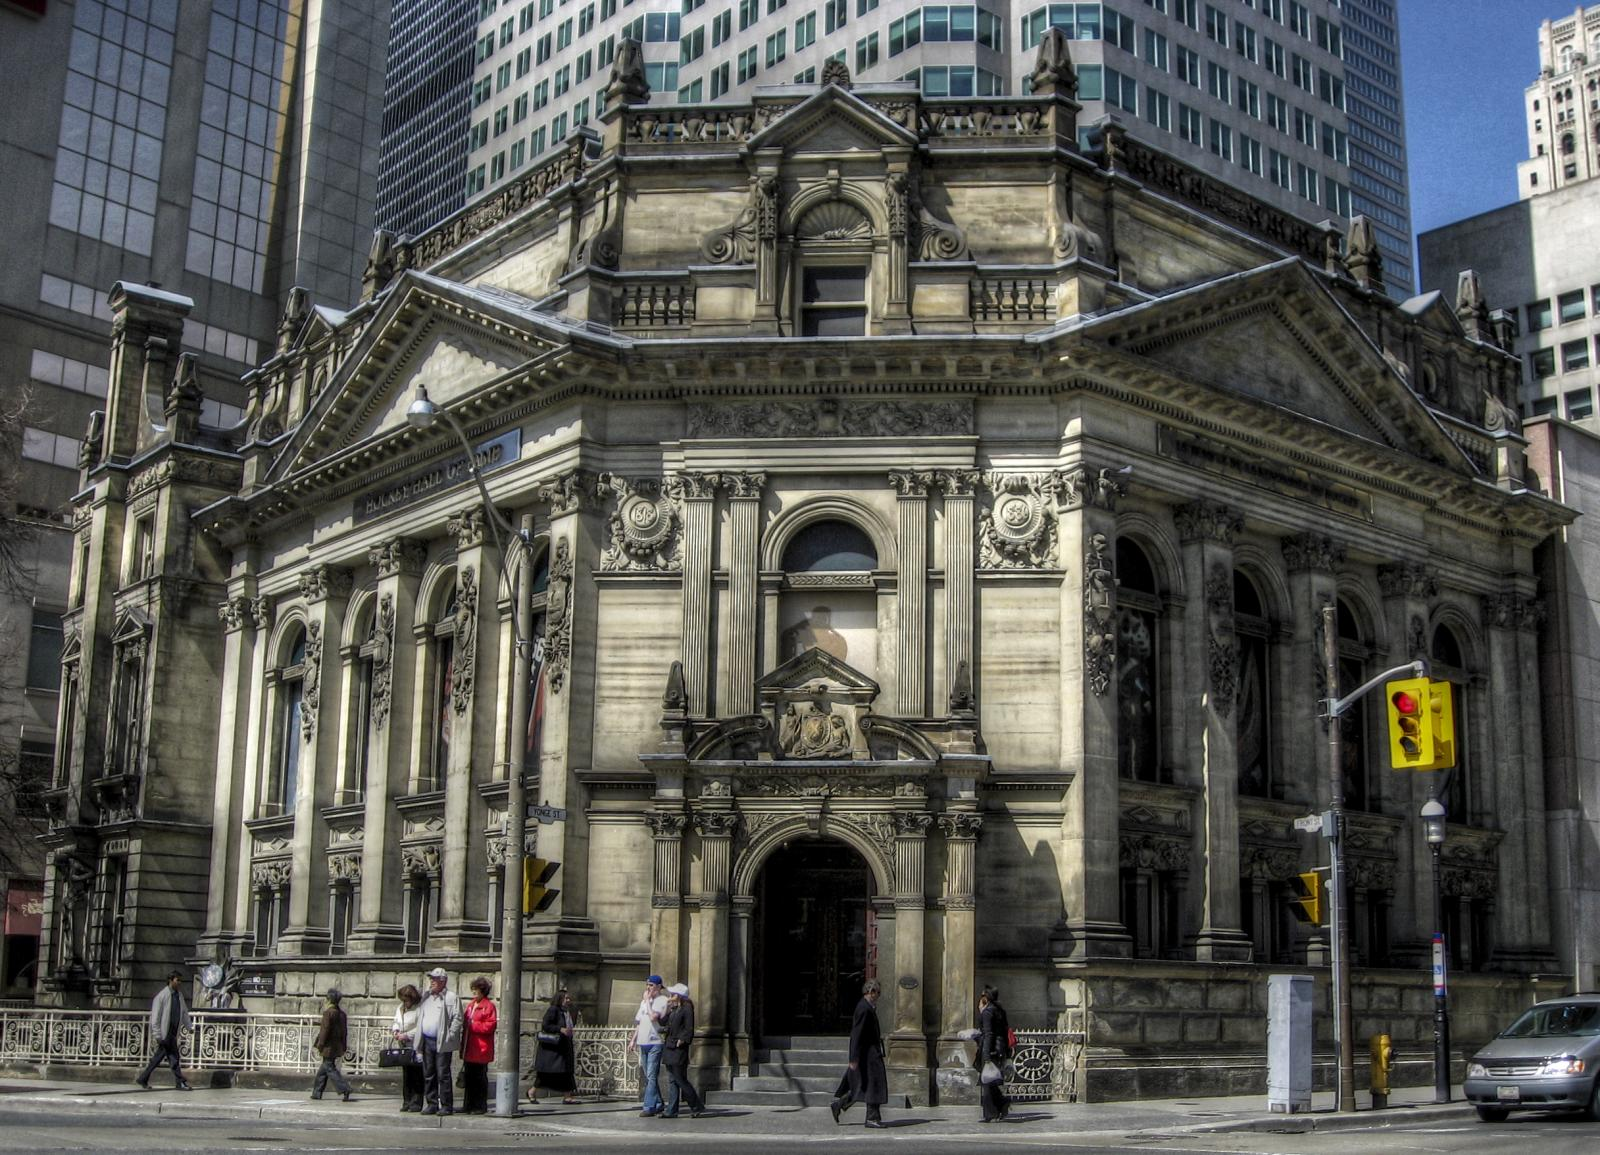 The Hockey Hall of Fame in Toronto. Photo by -Astin- in the Torontoist Flickr Pool.